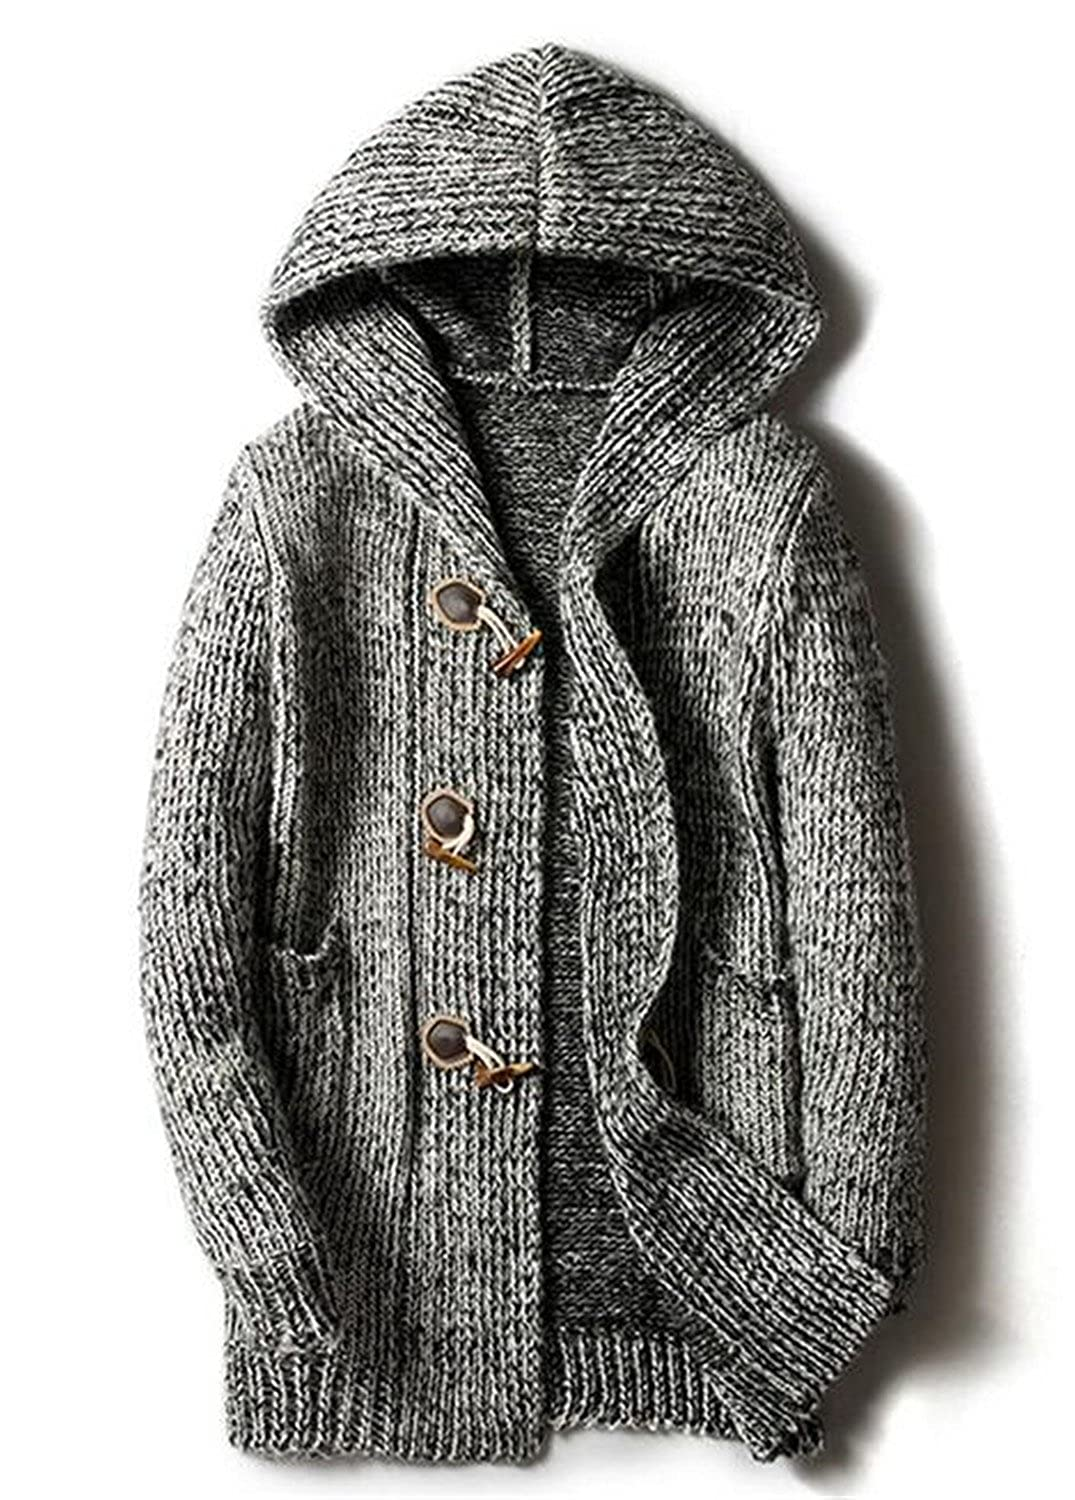 Soto6ro Autumn Winter Loose Long Mens Cardigans Sweaters